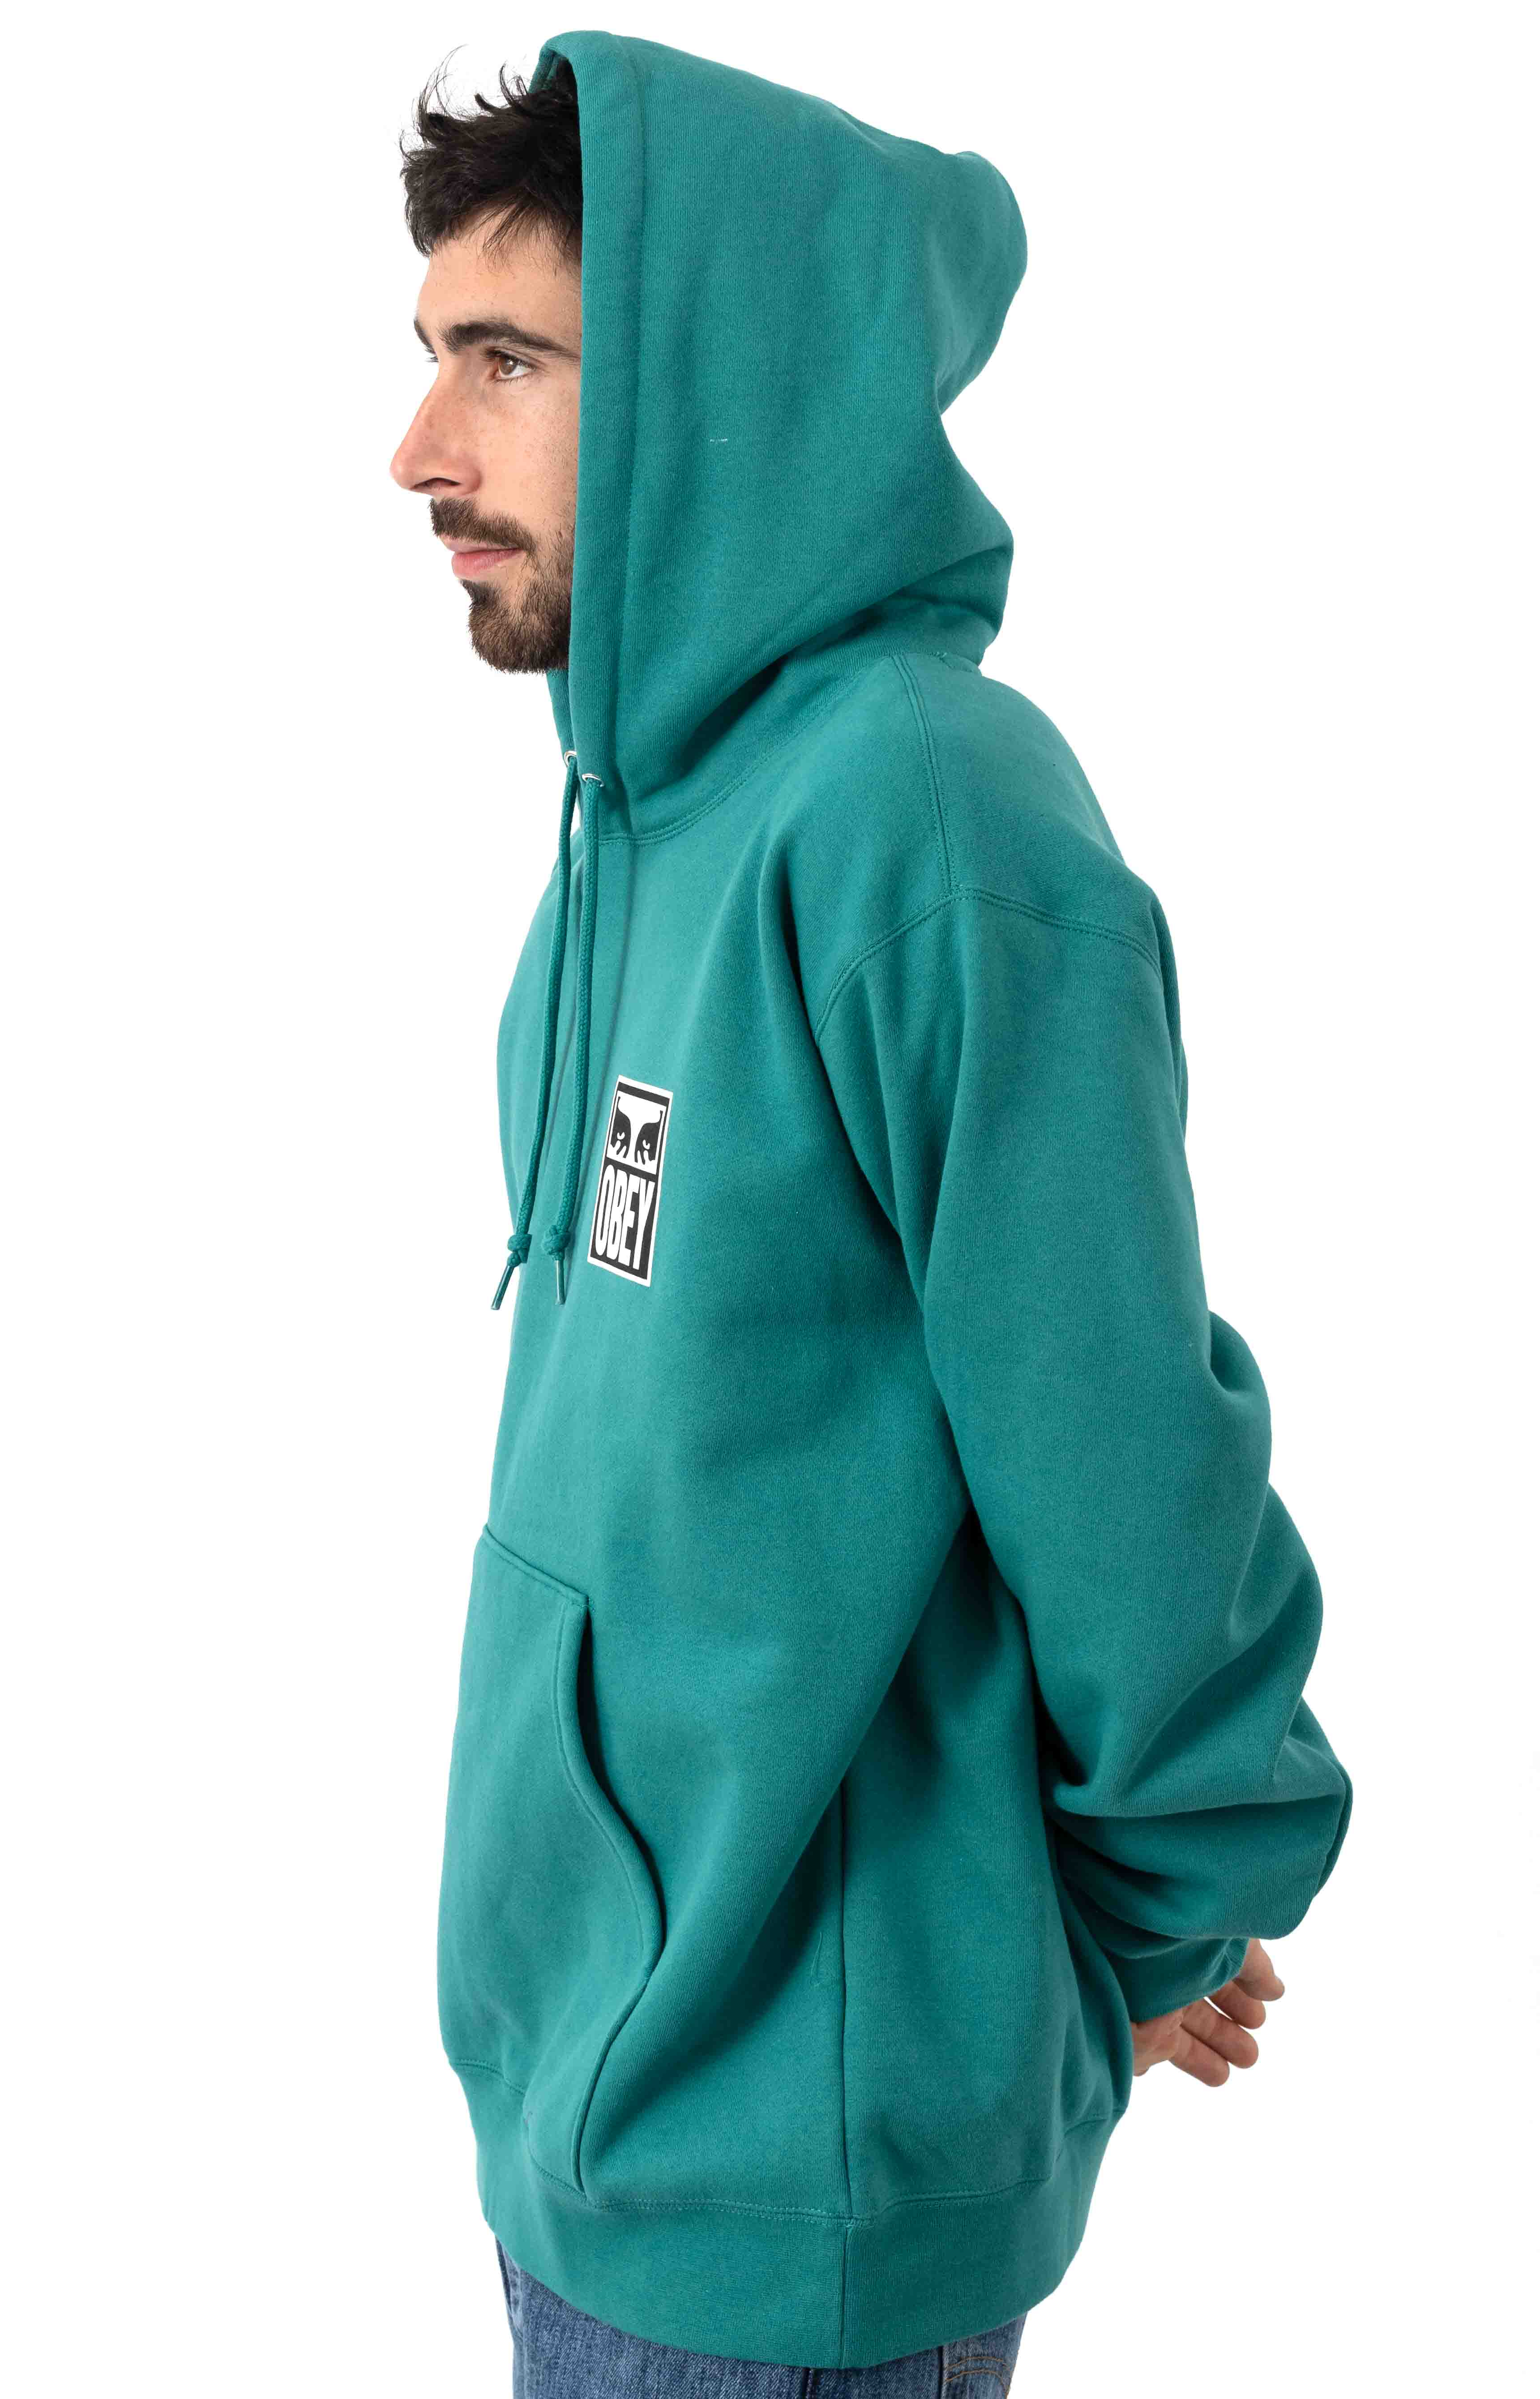 Obey Eyes Icon 2 Pullover Hoodie - Eucalyptus 3